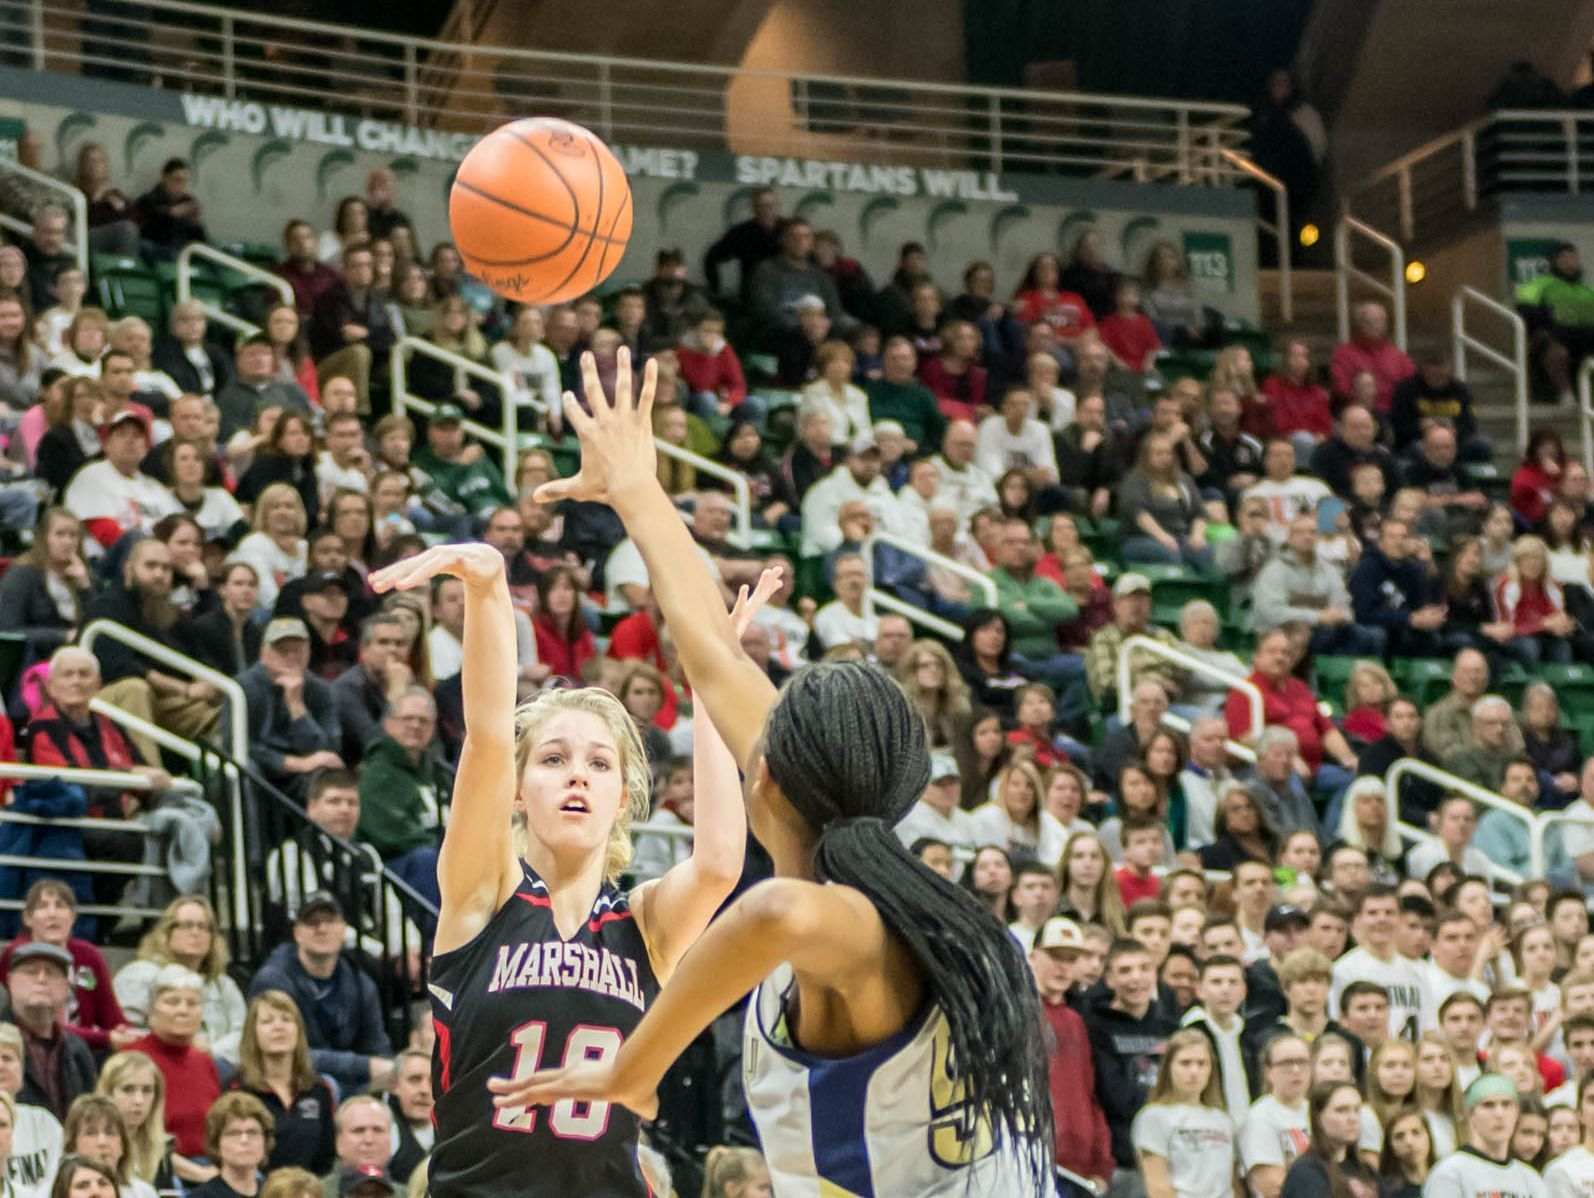 Marshall's Natalie Tucker goes for the 3-pointer during first half action against Dertroit Country Day at the Class B state semifinal Friday evening.